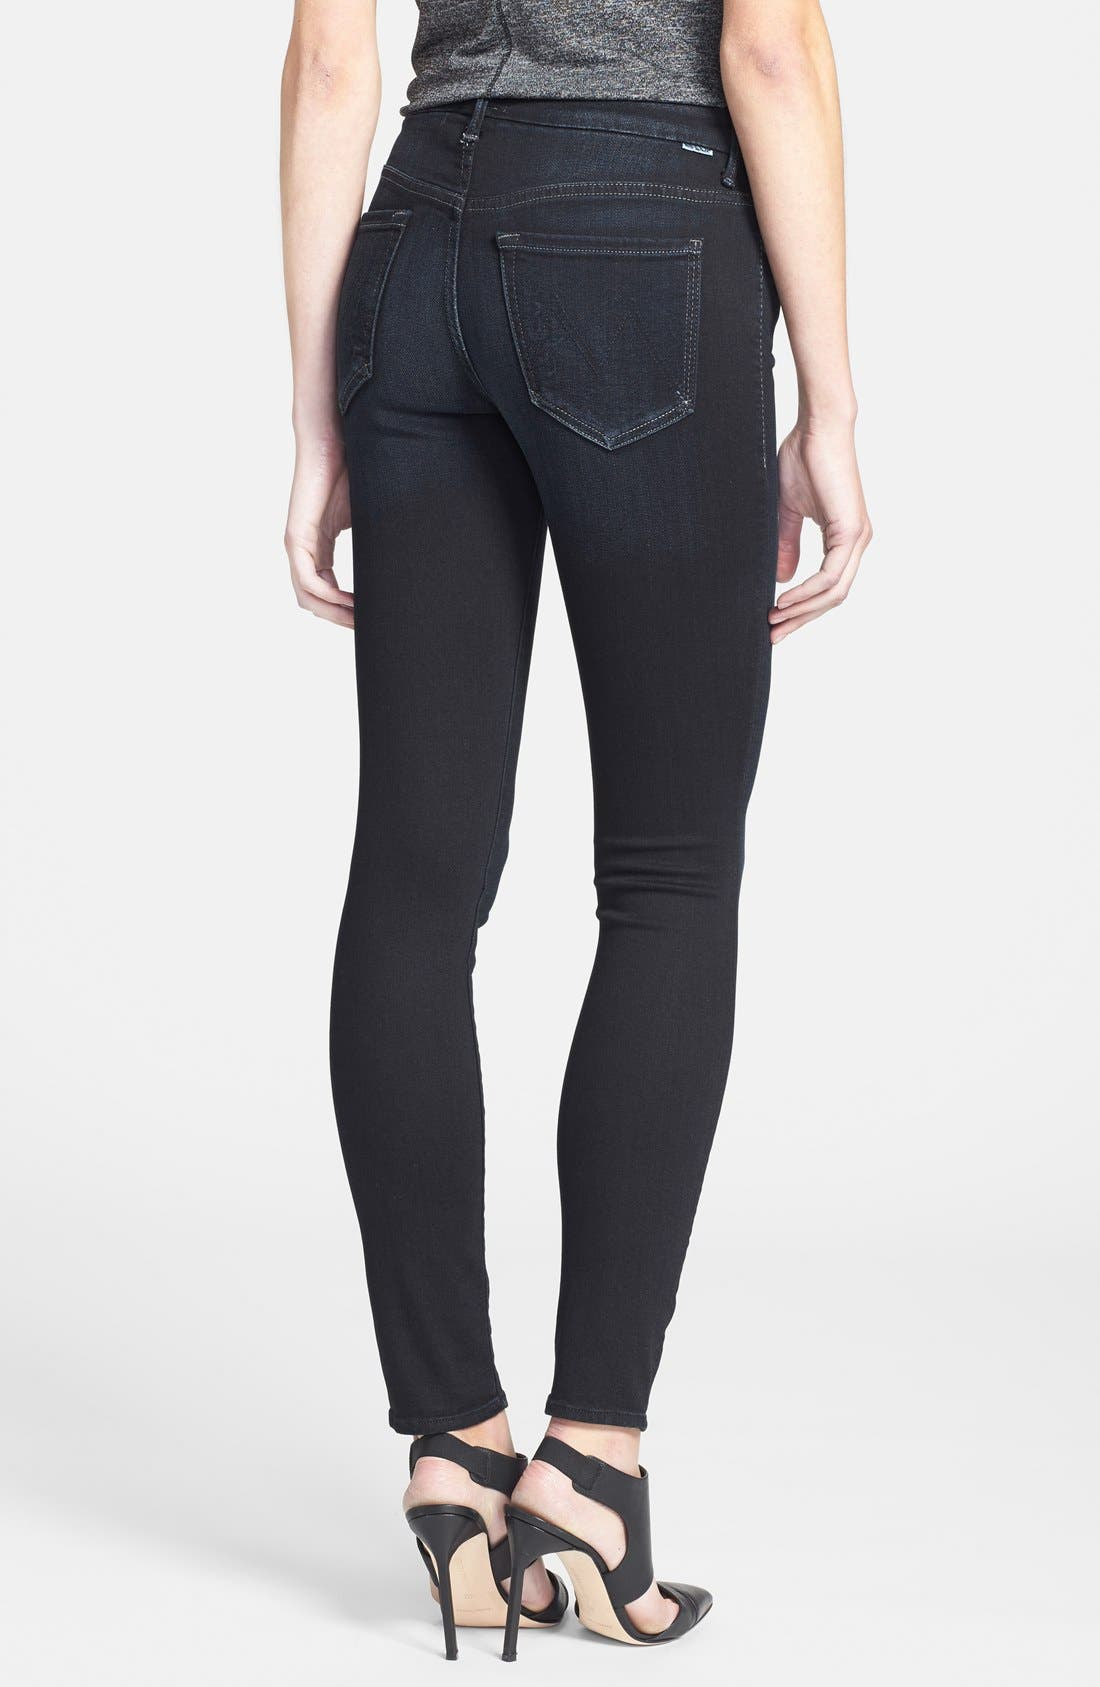 'The Looker' High Rise Skinny Jeans,                             Alternate thumbnail 2, color,                             Coffee Tea Or Me